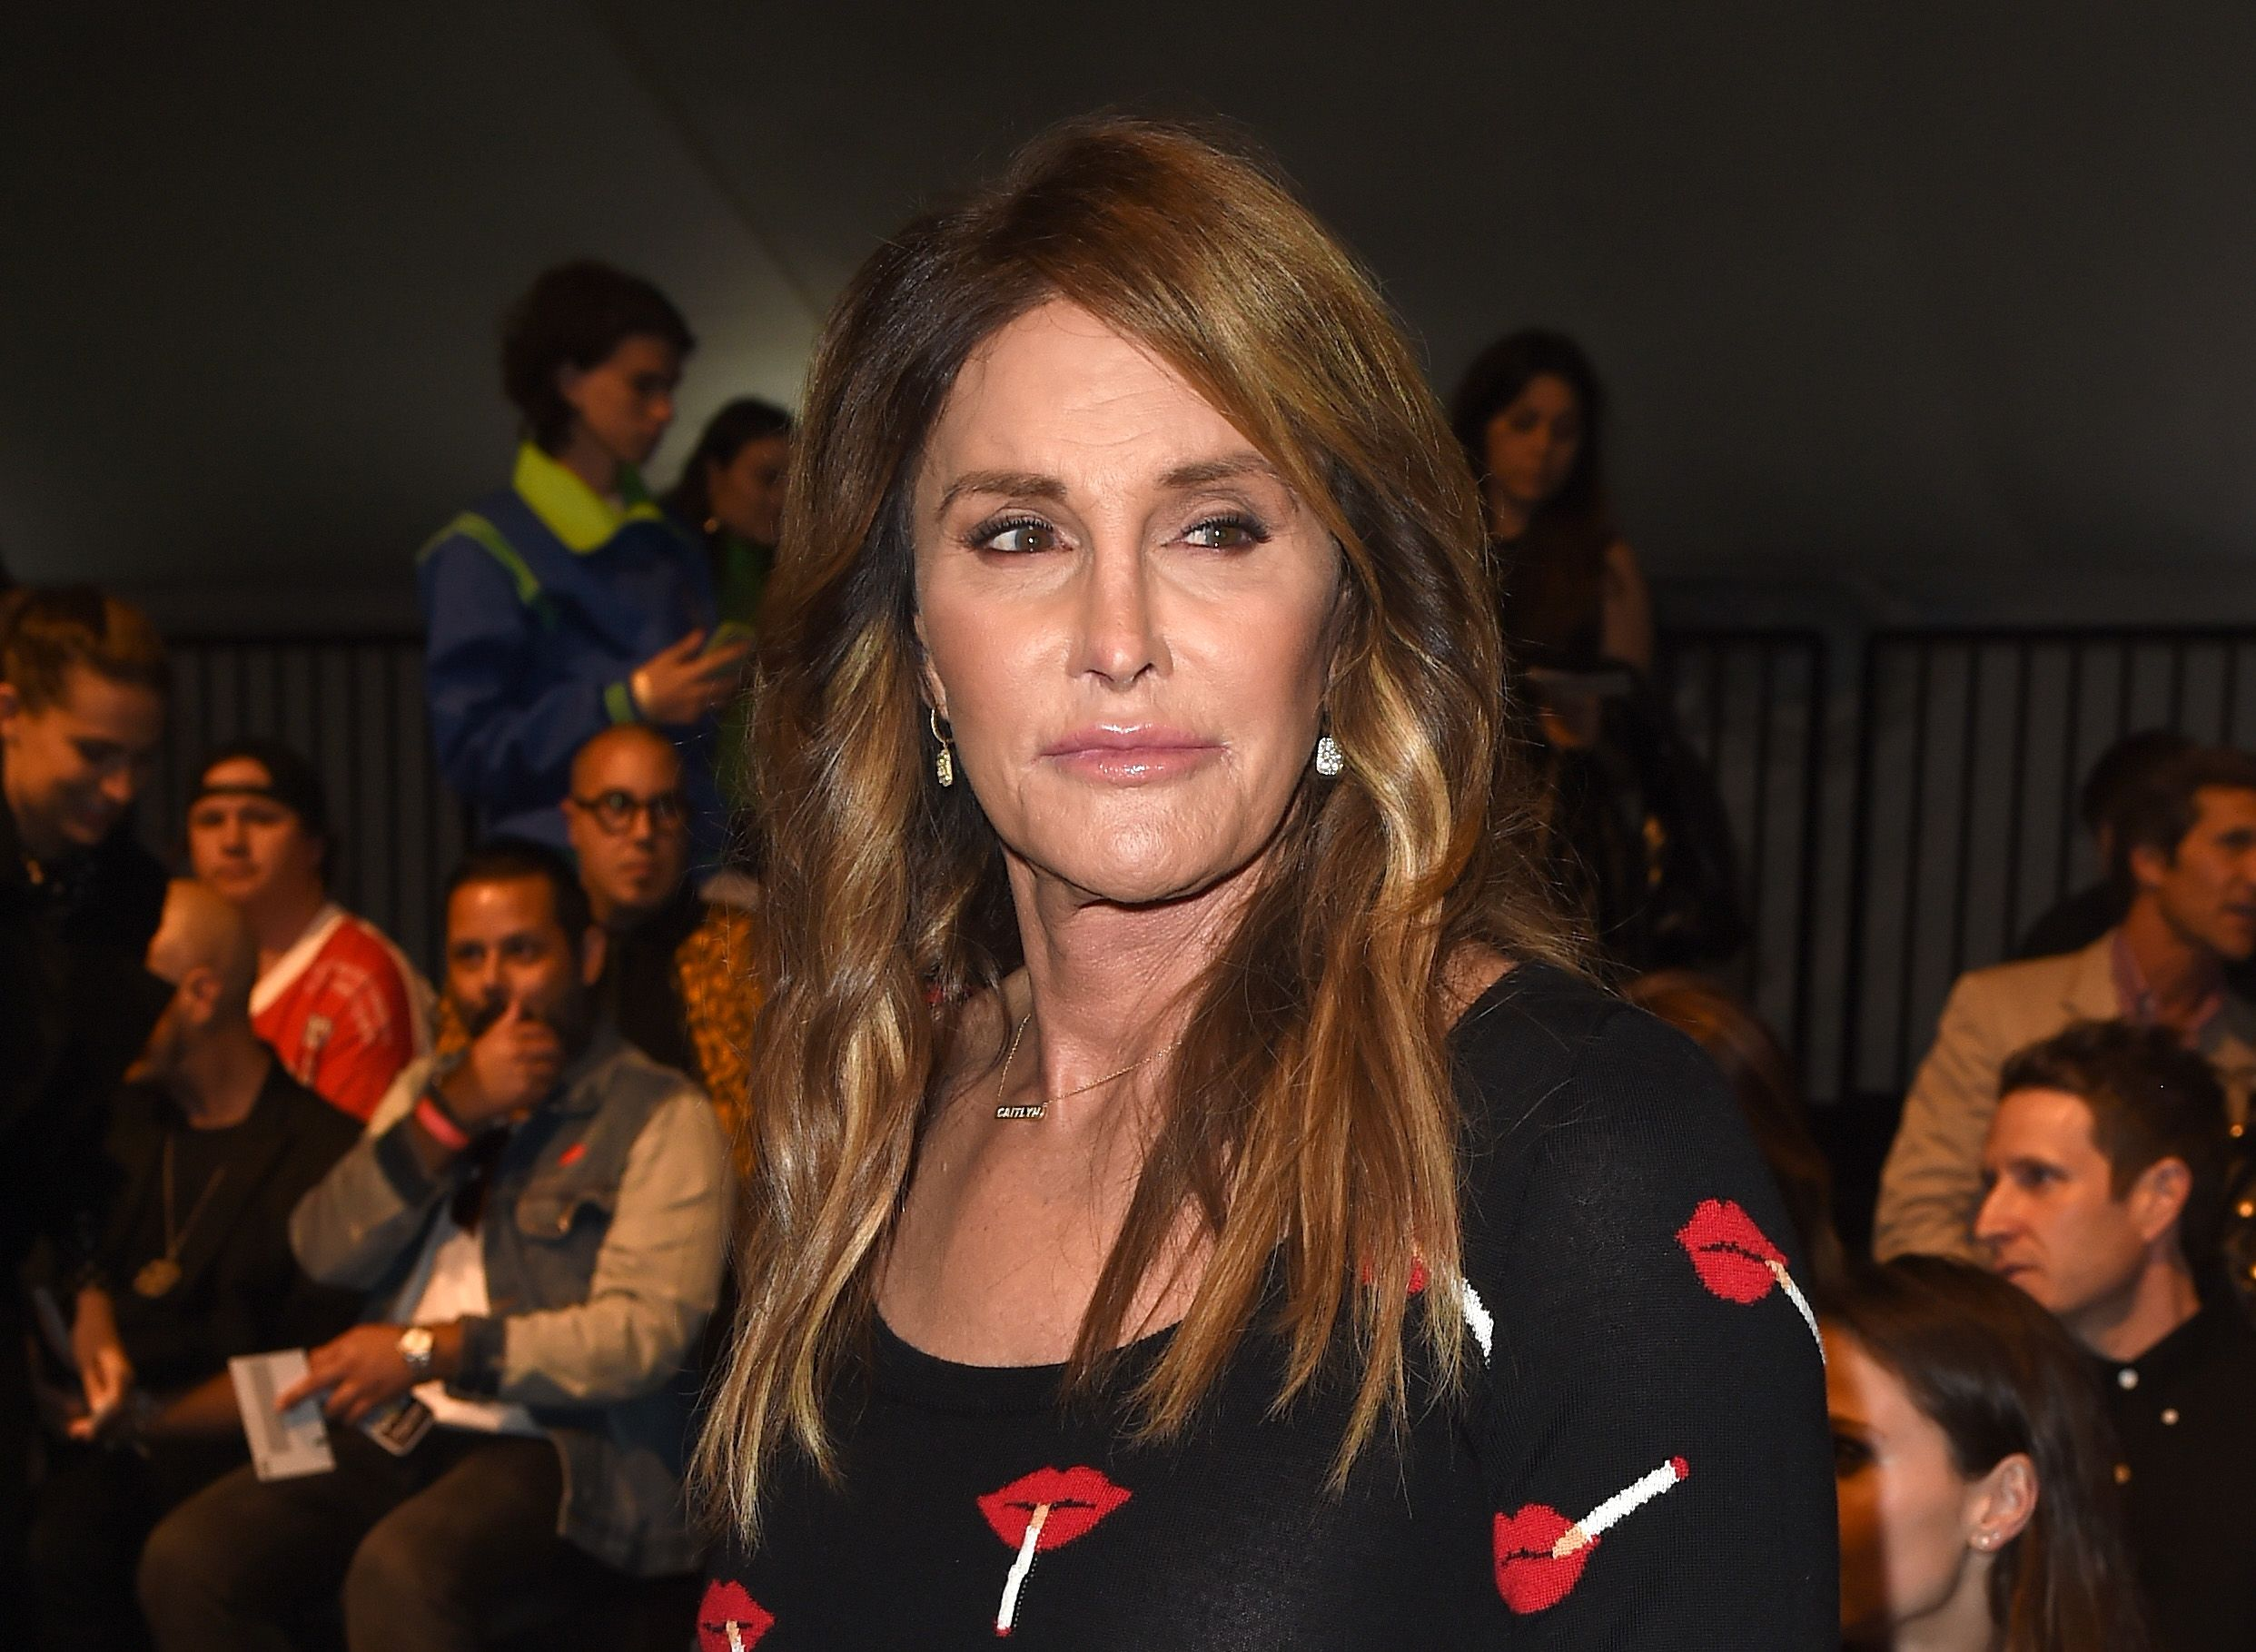 Caitlyn Jenner at the Moschino Spring/Summer 17 Menswear and Women's Resort Collection in 2016 in Los Angeles | Source: Getty Images